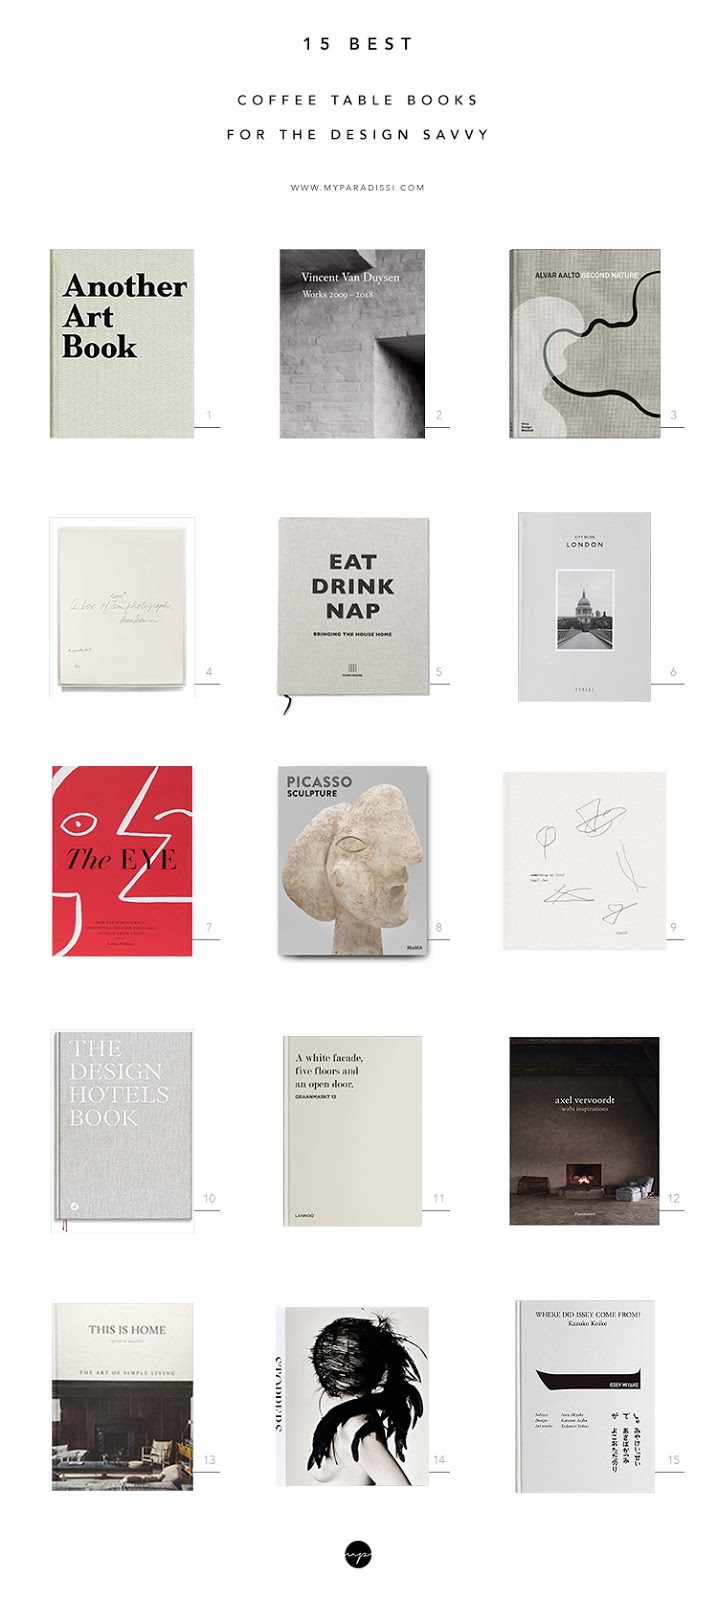 Best coffee table books for the design savvy, interior design books, fashion books, books with beautiful cover, art books, minimalist book cover design, contemporary design books, wabi sabi books. Gift ideas for the design lover. Book list curated by Eleni Psyllaki for My Paradissi